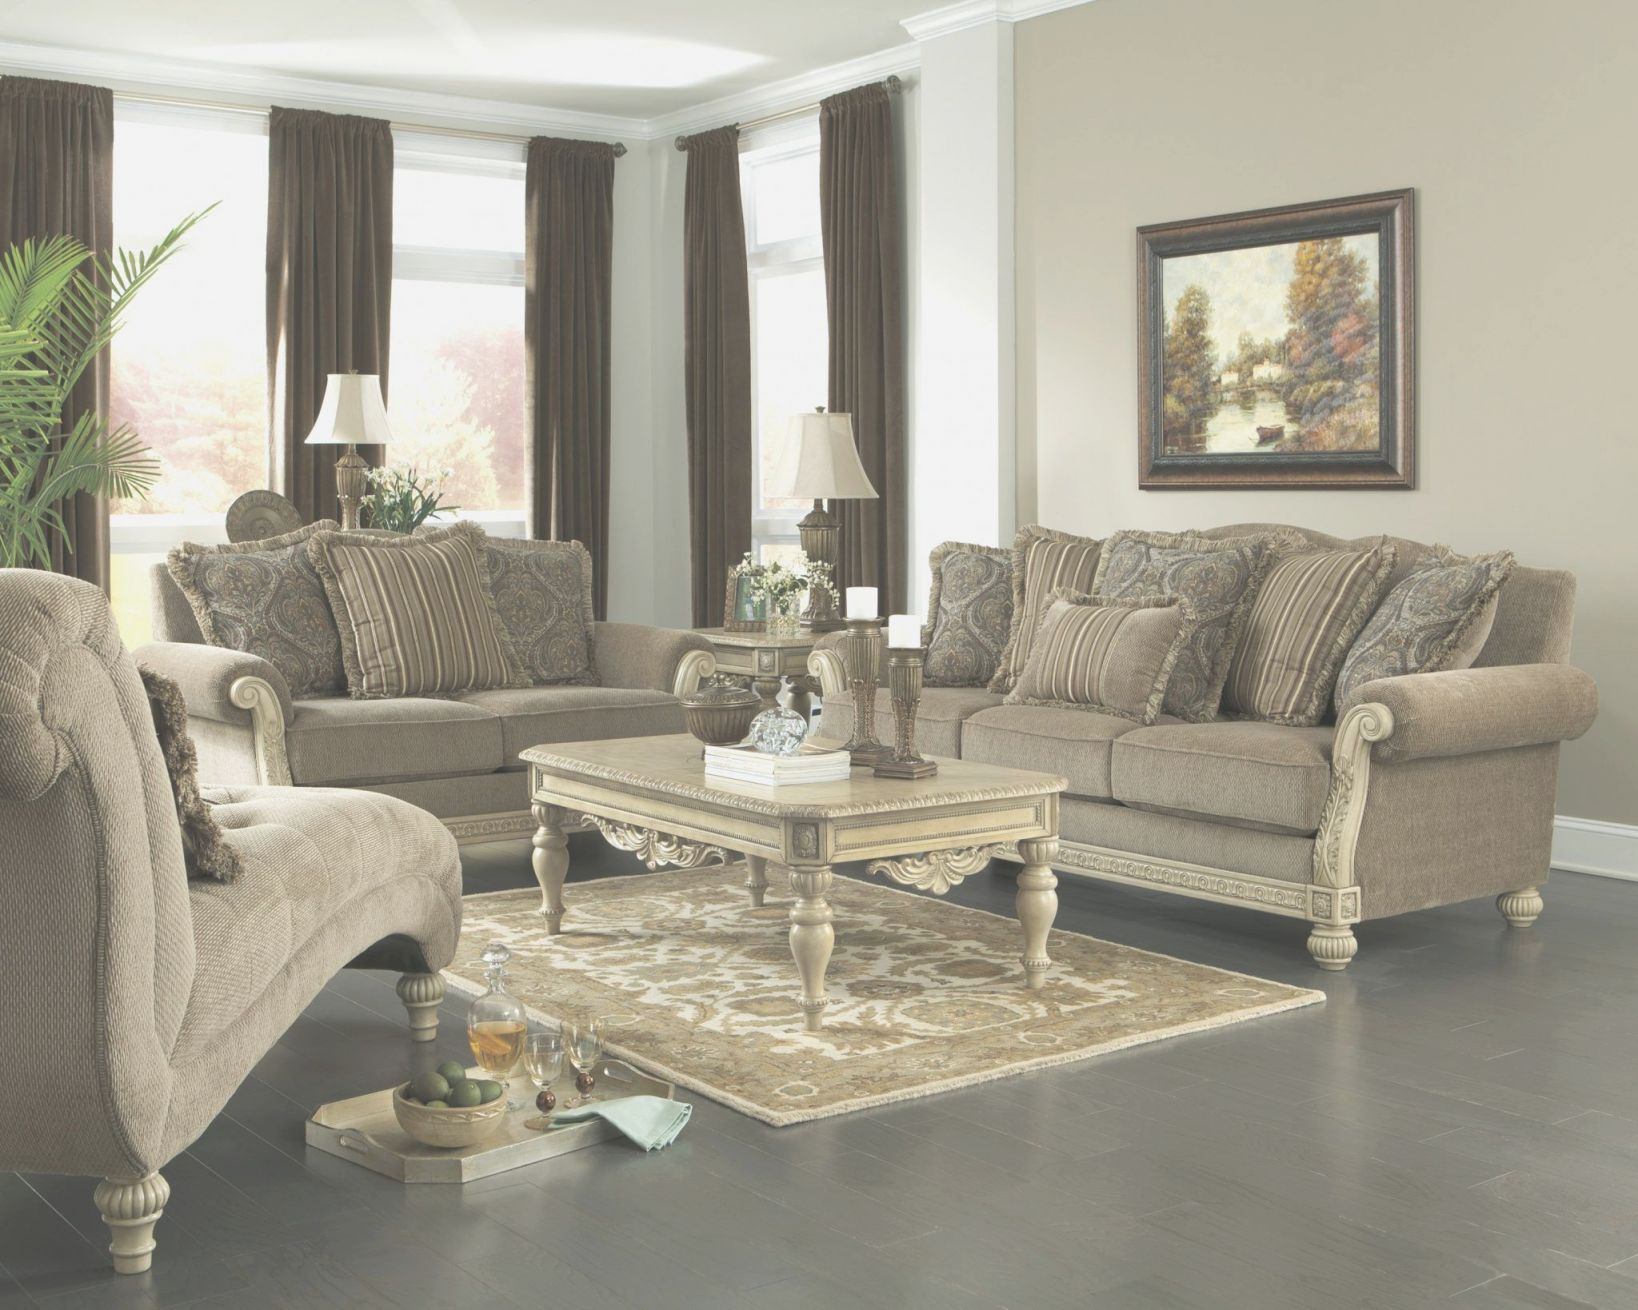 Ashleys Furniture Living Room Sets - Ashley Furniture inside New Ashleys Furniture Living Room Sets